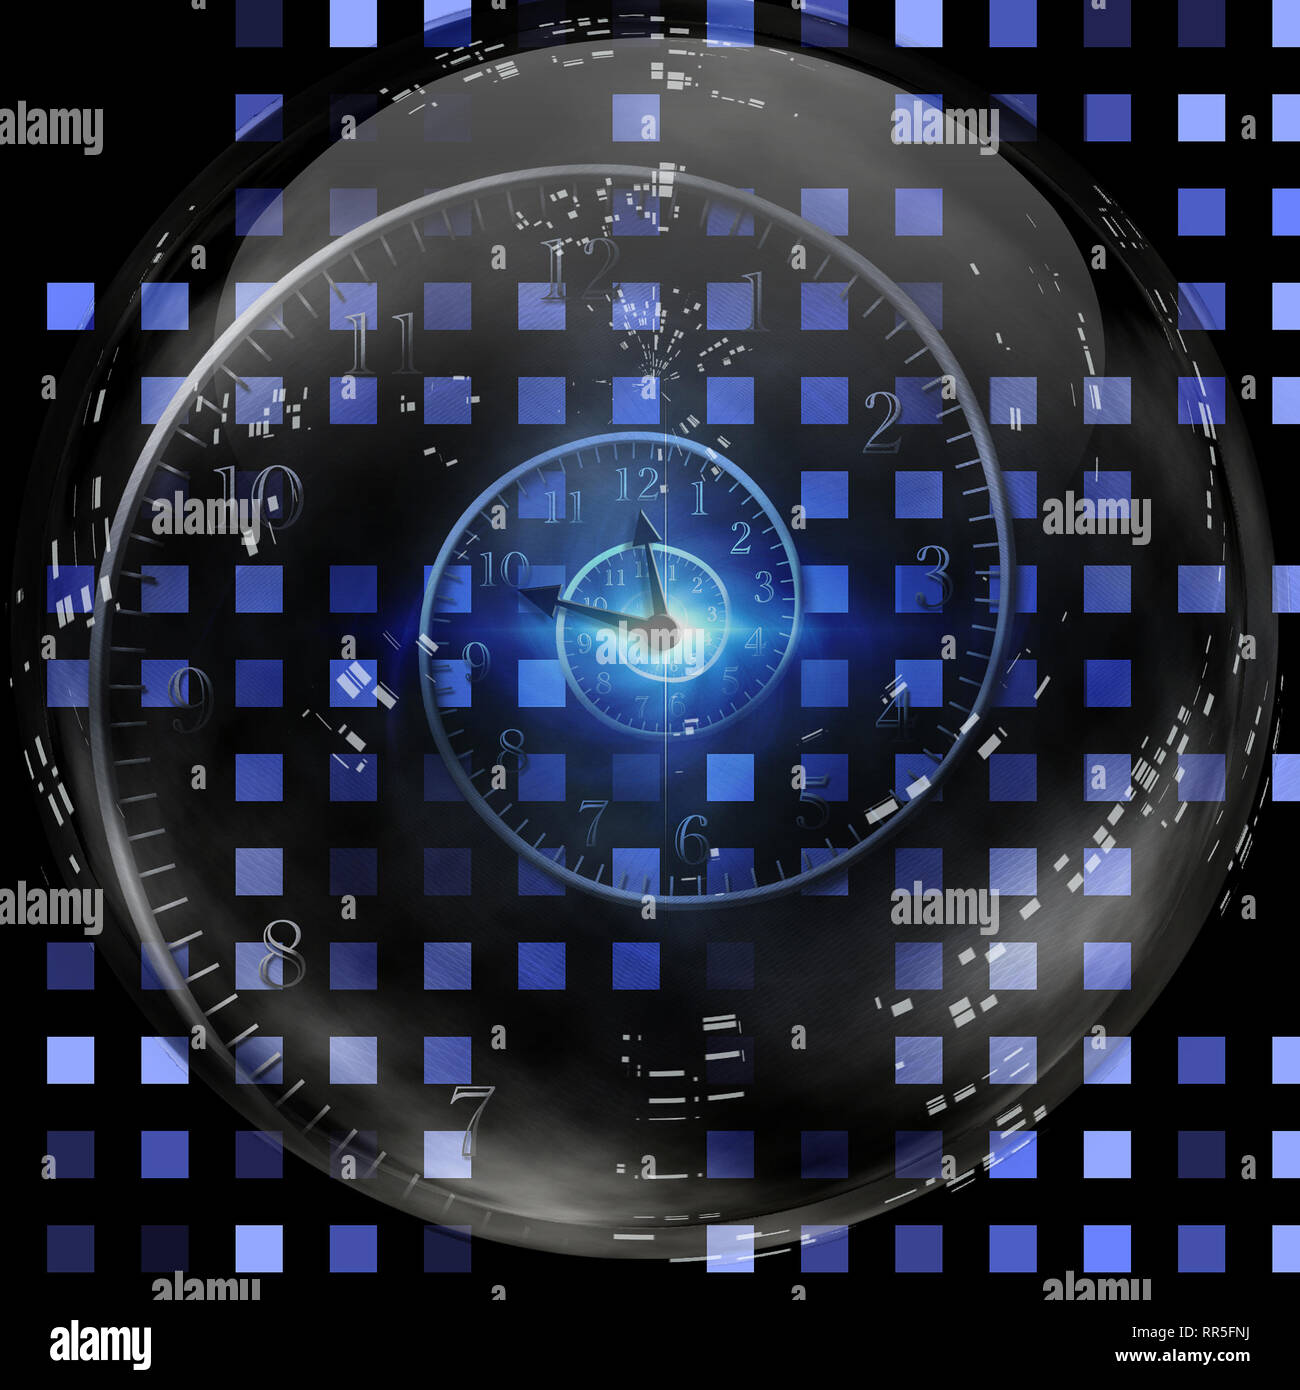 Spiral of time inside crystal ball. - Stock Image